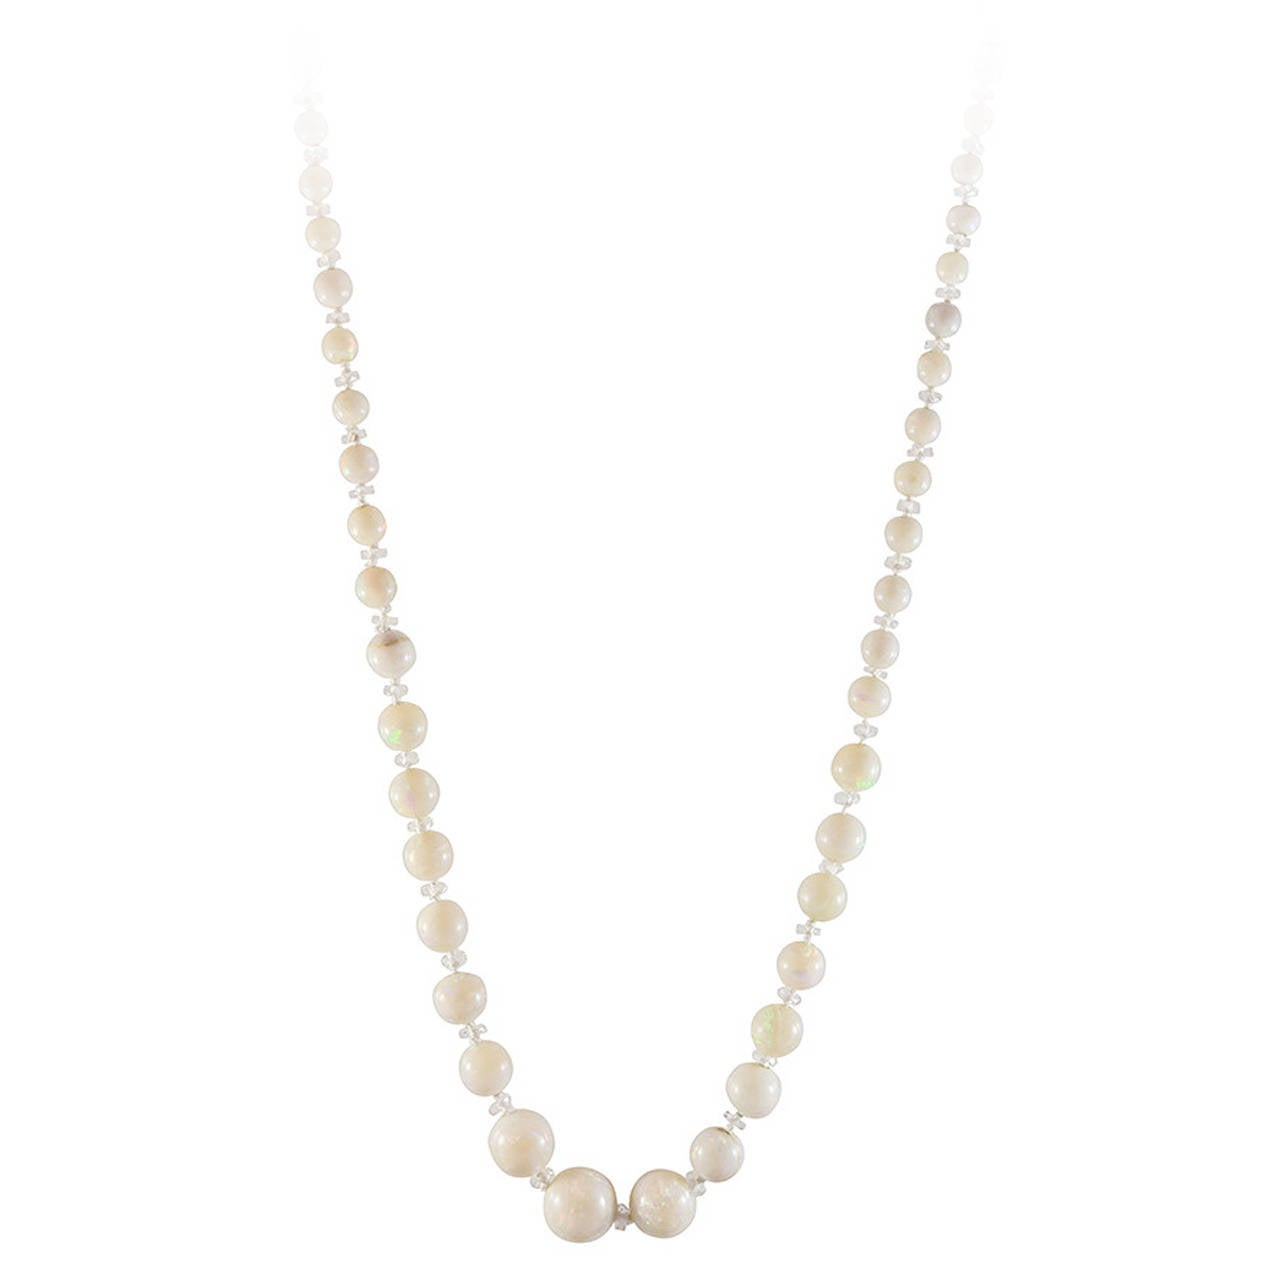 Graduating White Opal Bead Necklace 1